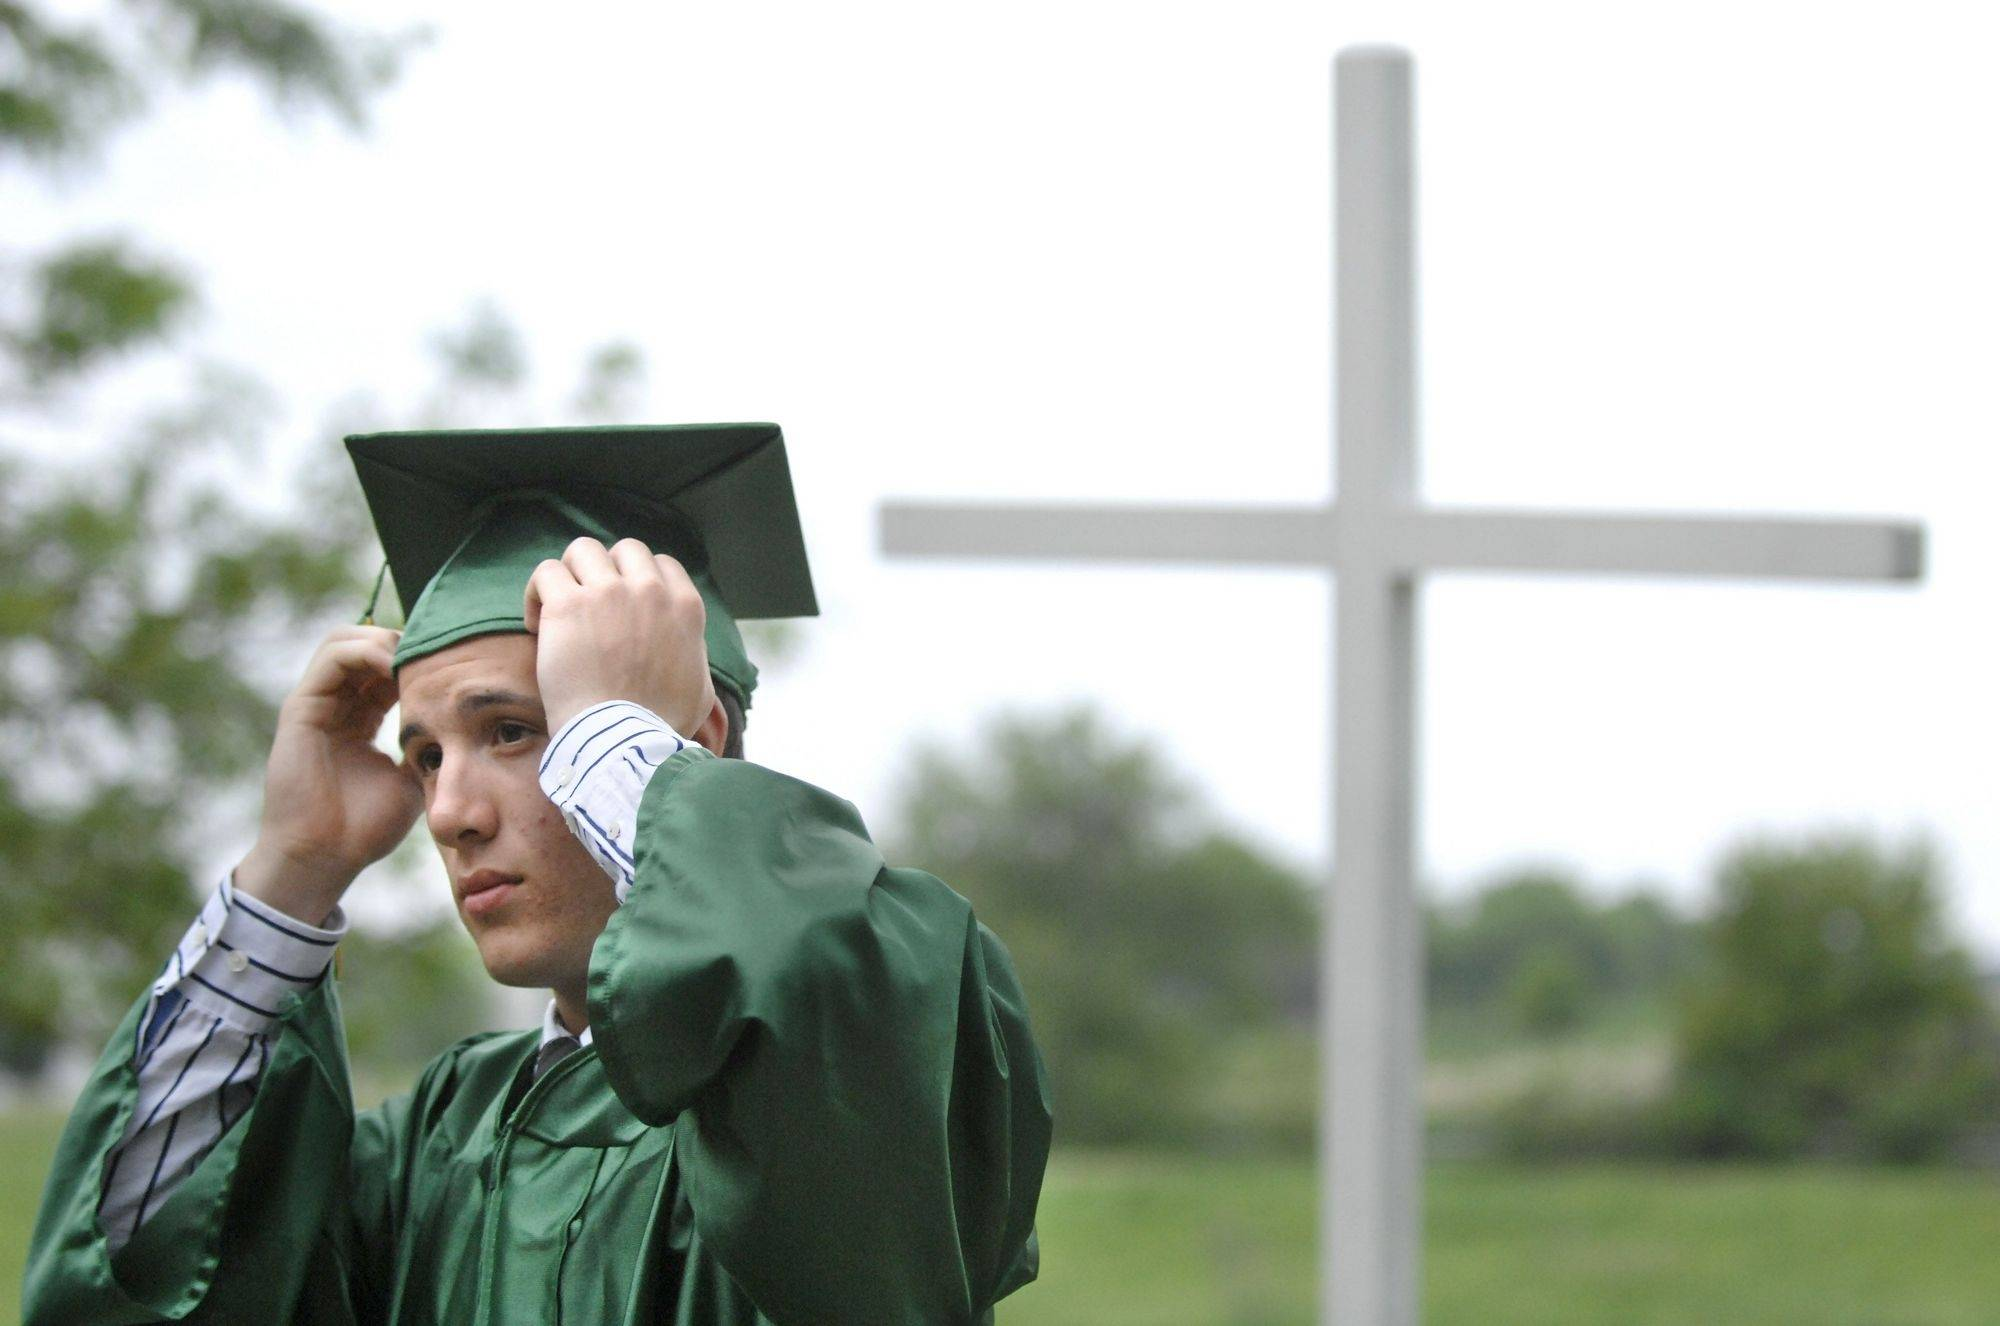 Dylan Kohl adjusts his cap before lining up for the St. Edward commencement ceremony at St. Patrick Church in St. Charles on Tuesday.